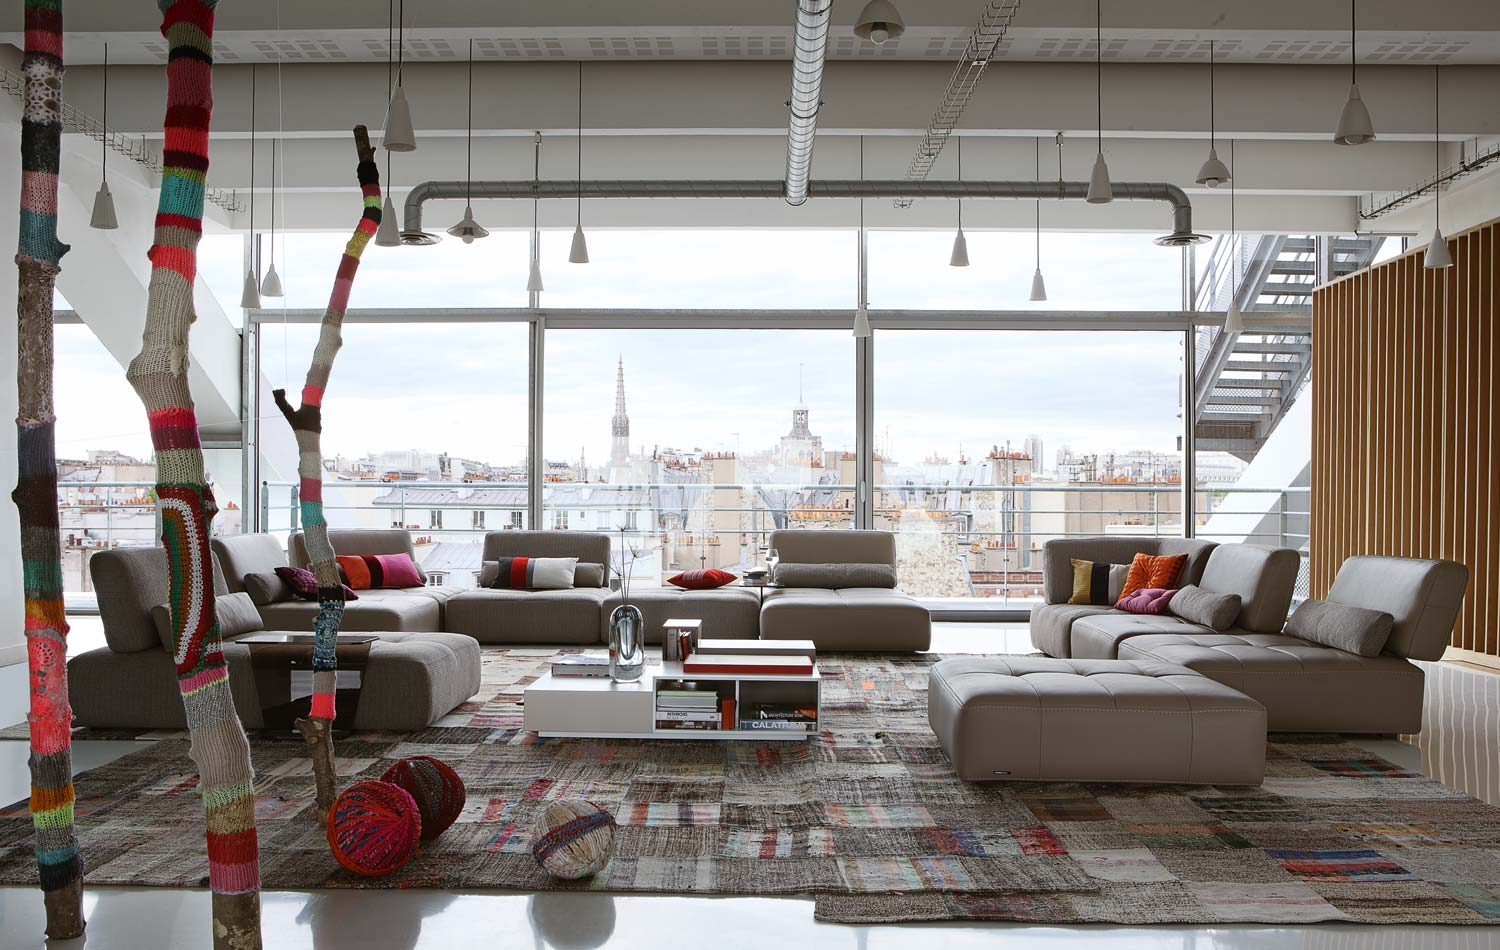 Superb Living Room Inspiration: 120 Modern Sofas By Roche Bobois (Part 3/3)